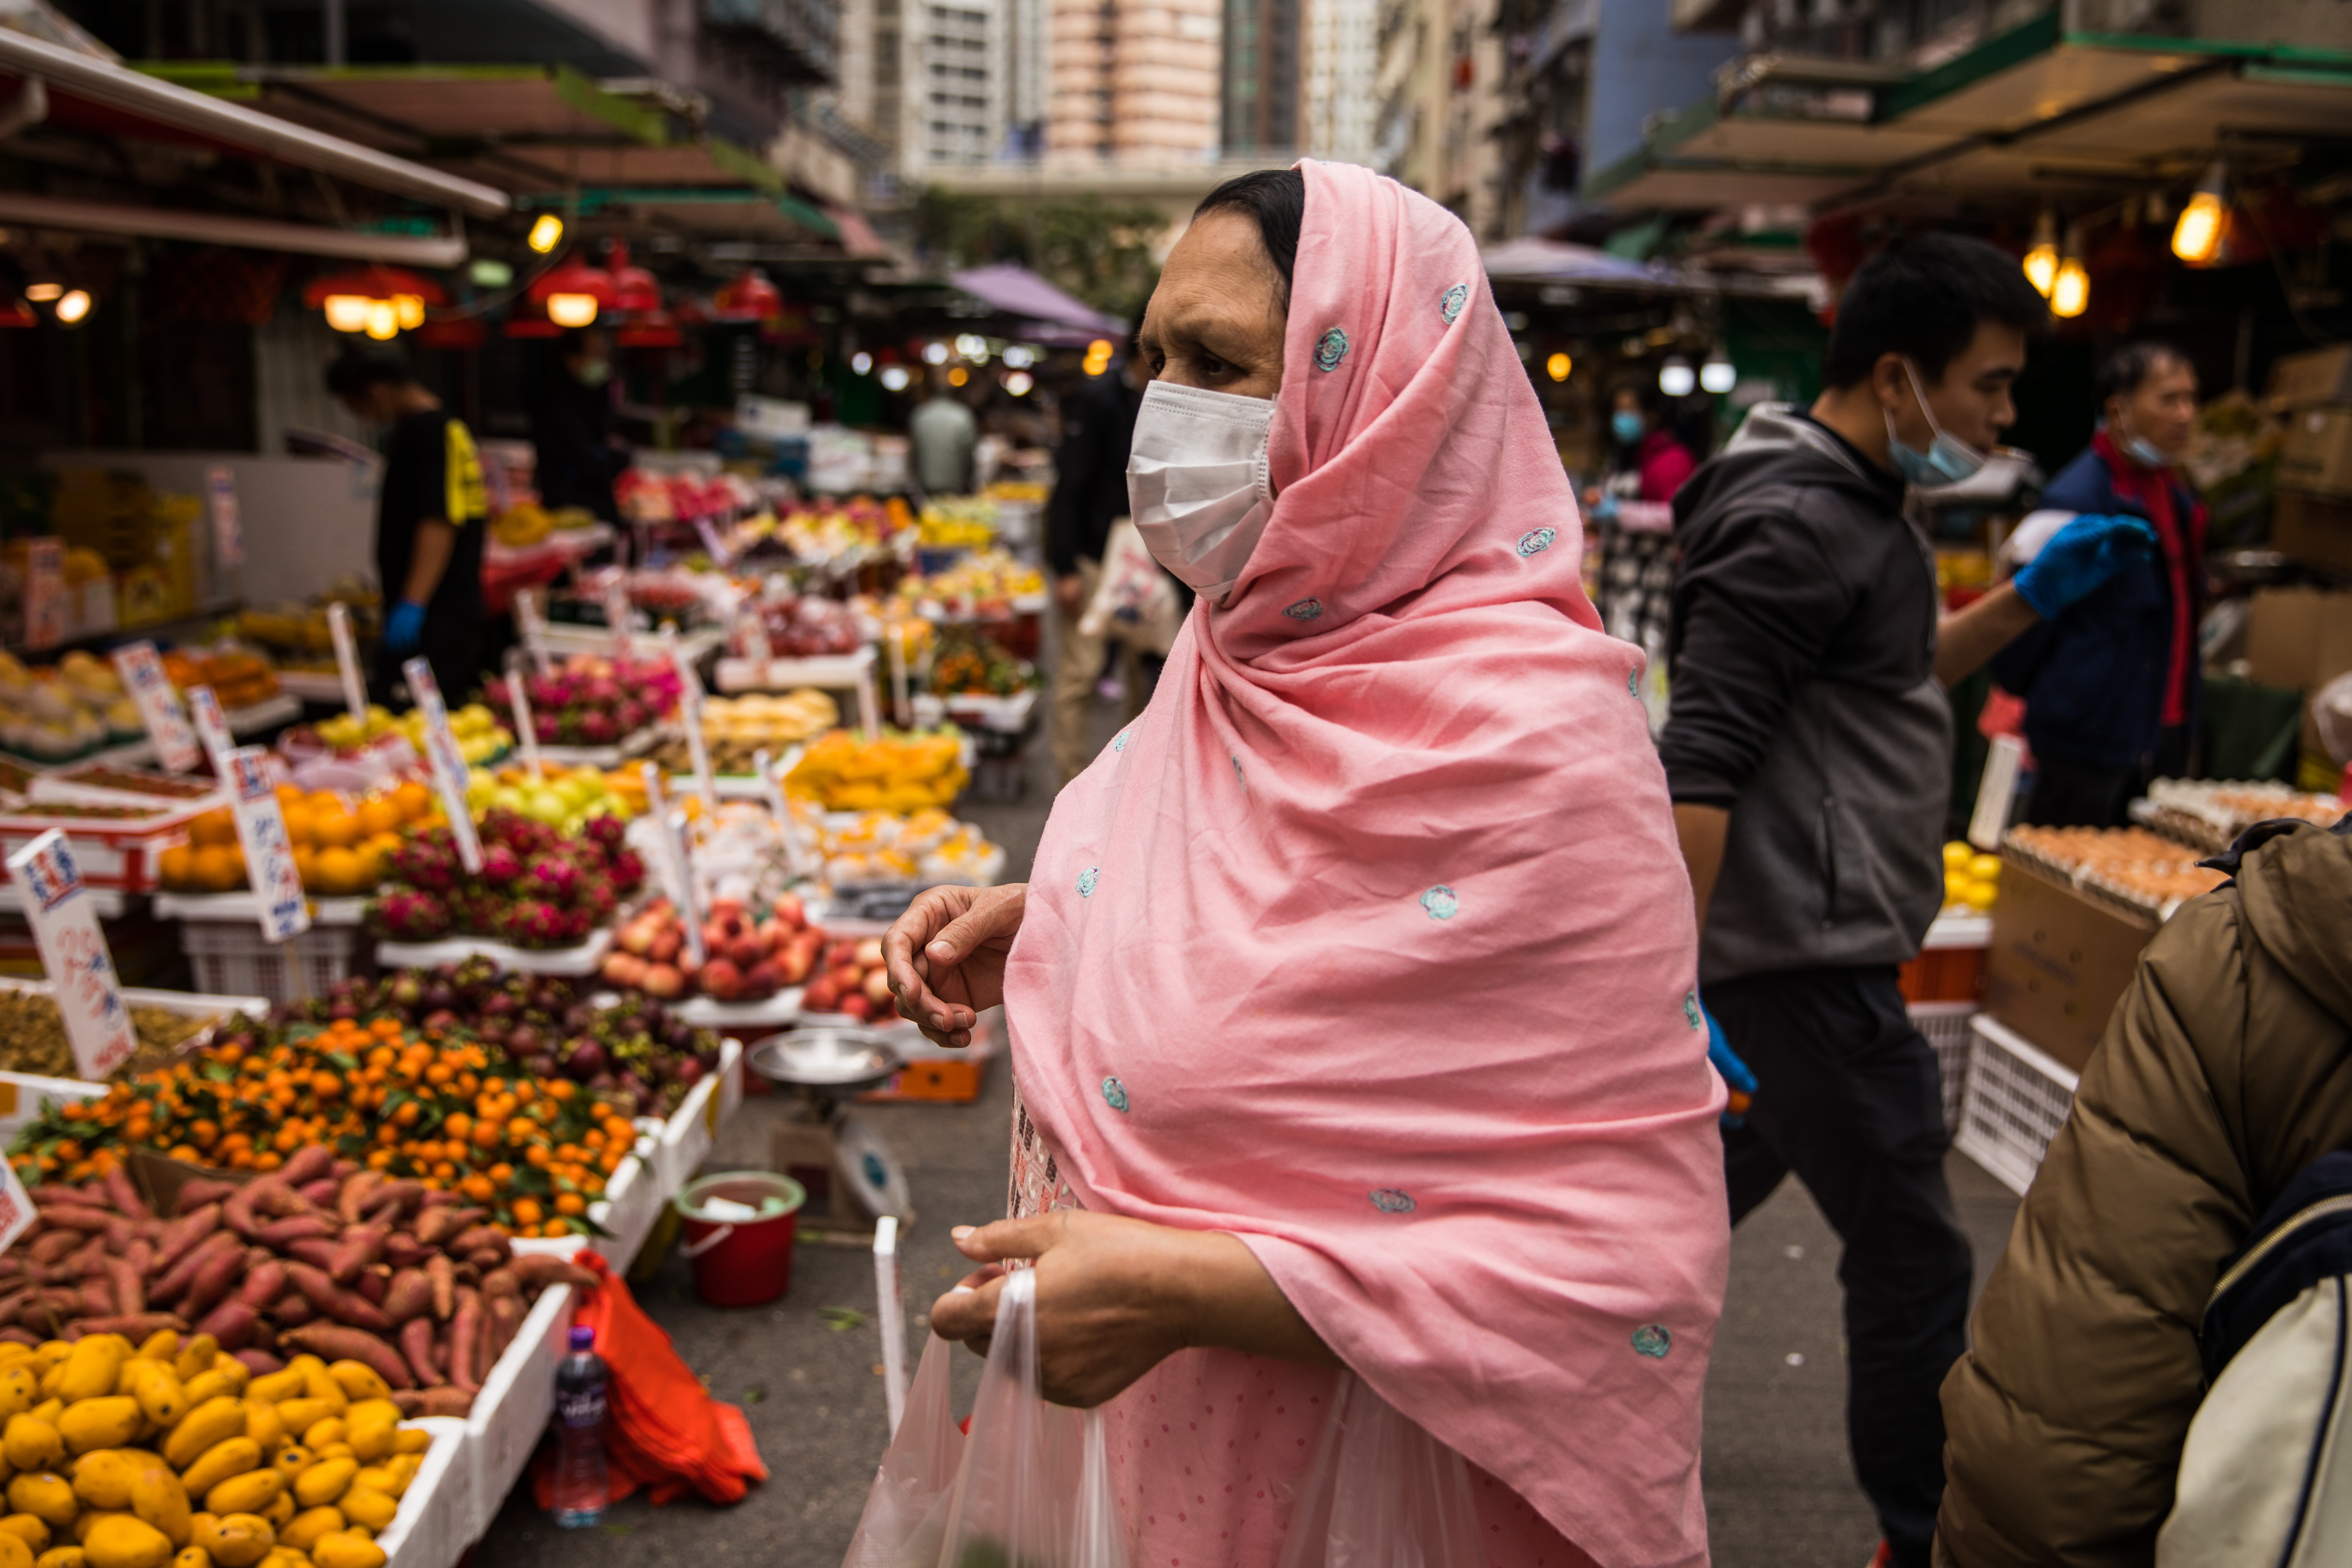 A woman wearing a protective face mask shops at a fresh food market in Hong Kong on Sunday.